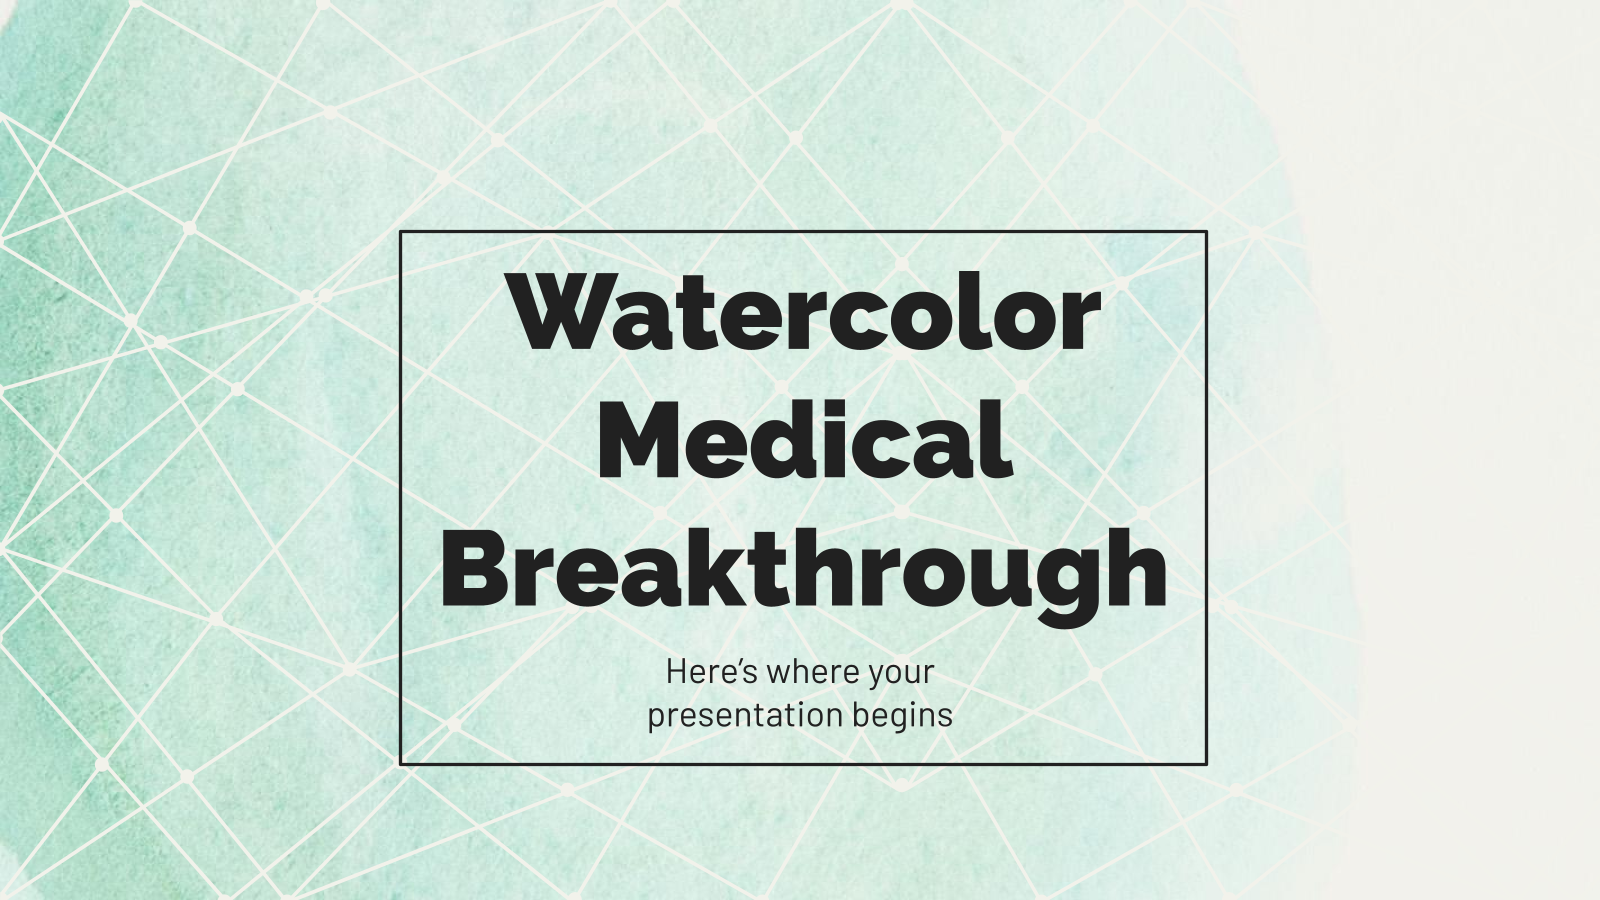 Watercolor Medical Breakthrough presentation template